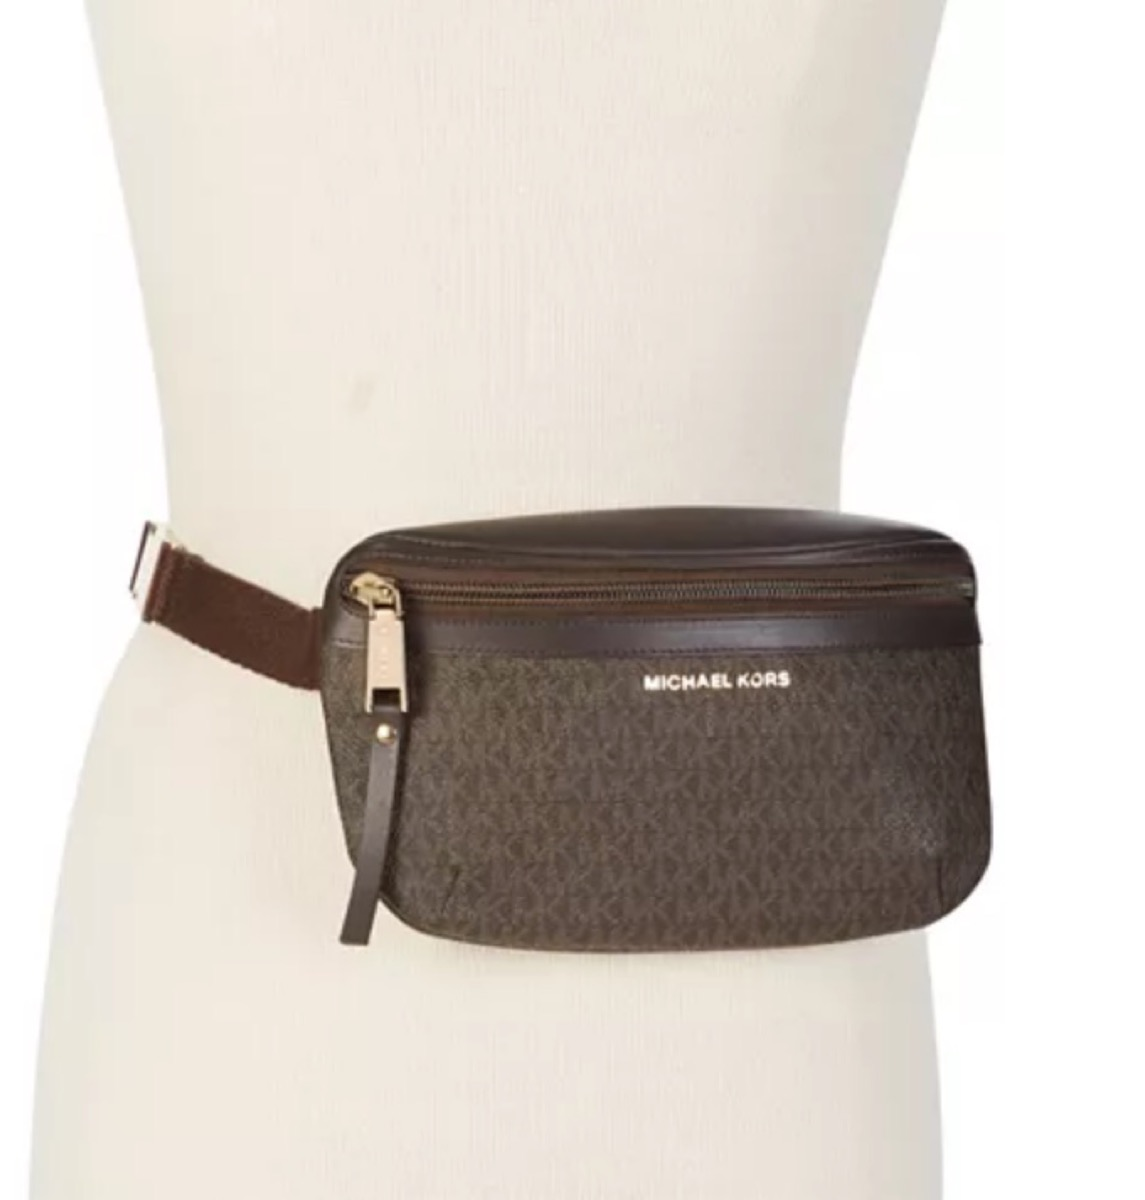 mannequin with brown michael kors fanny pack on its waist